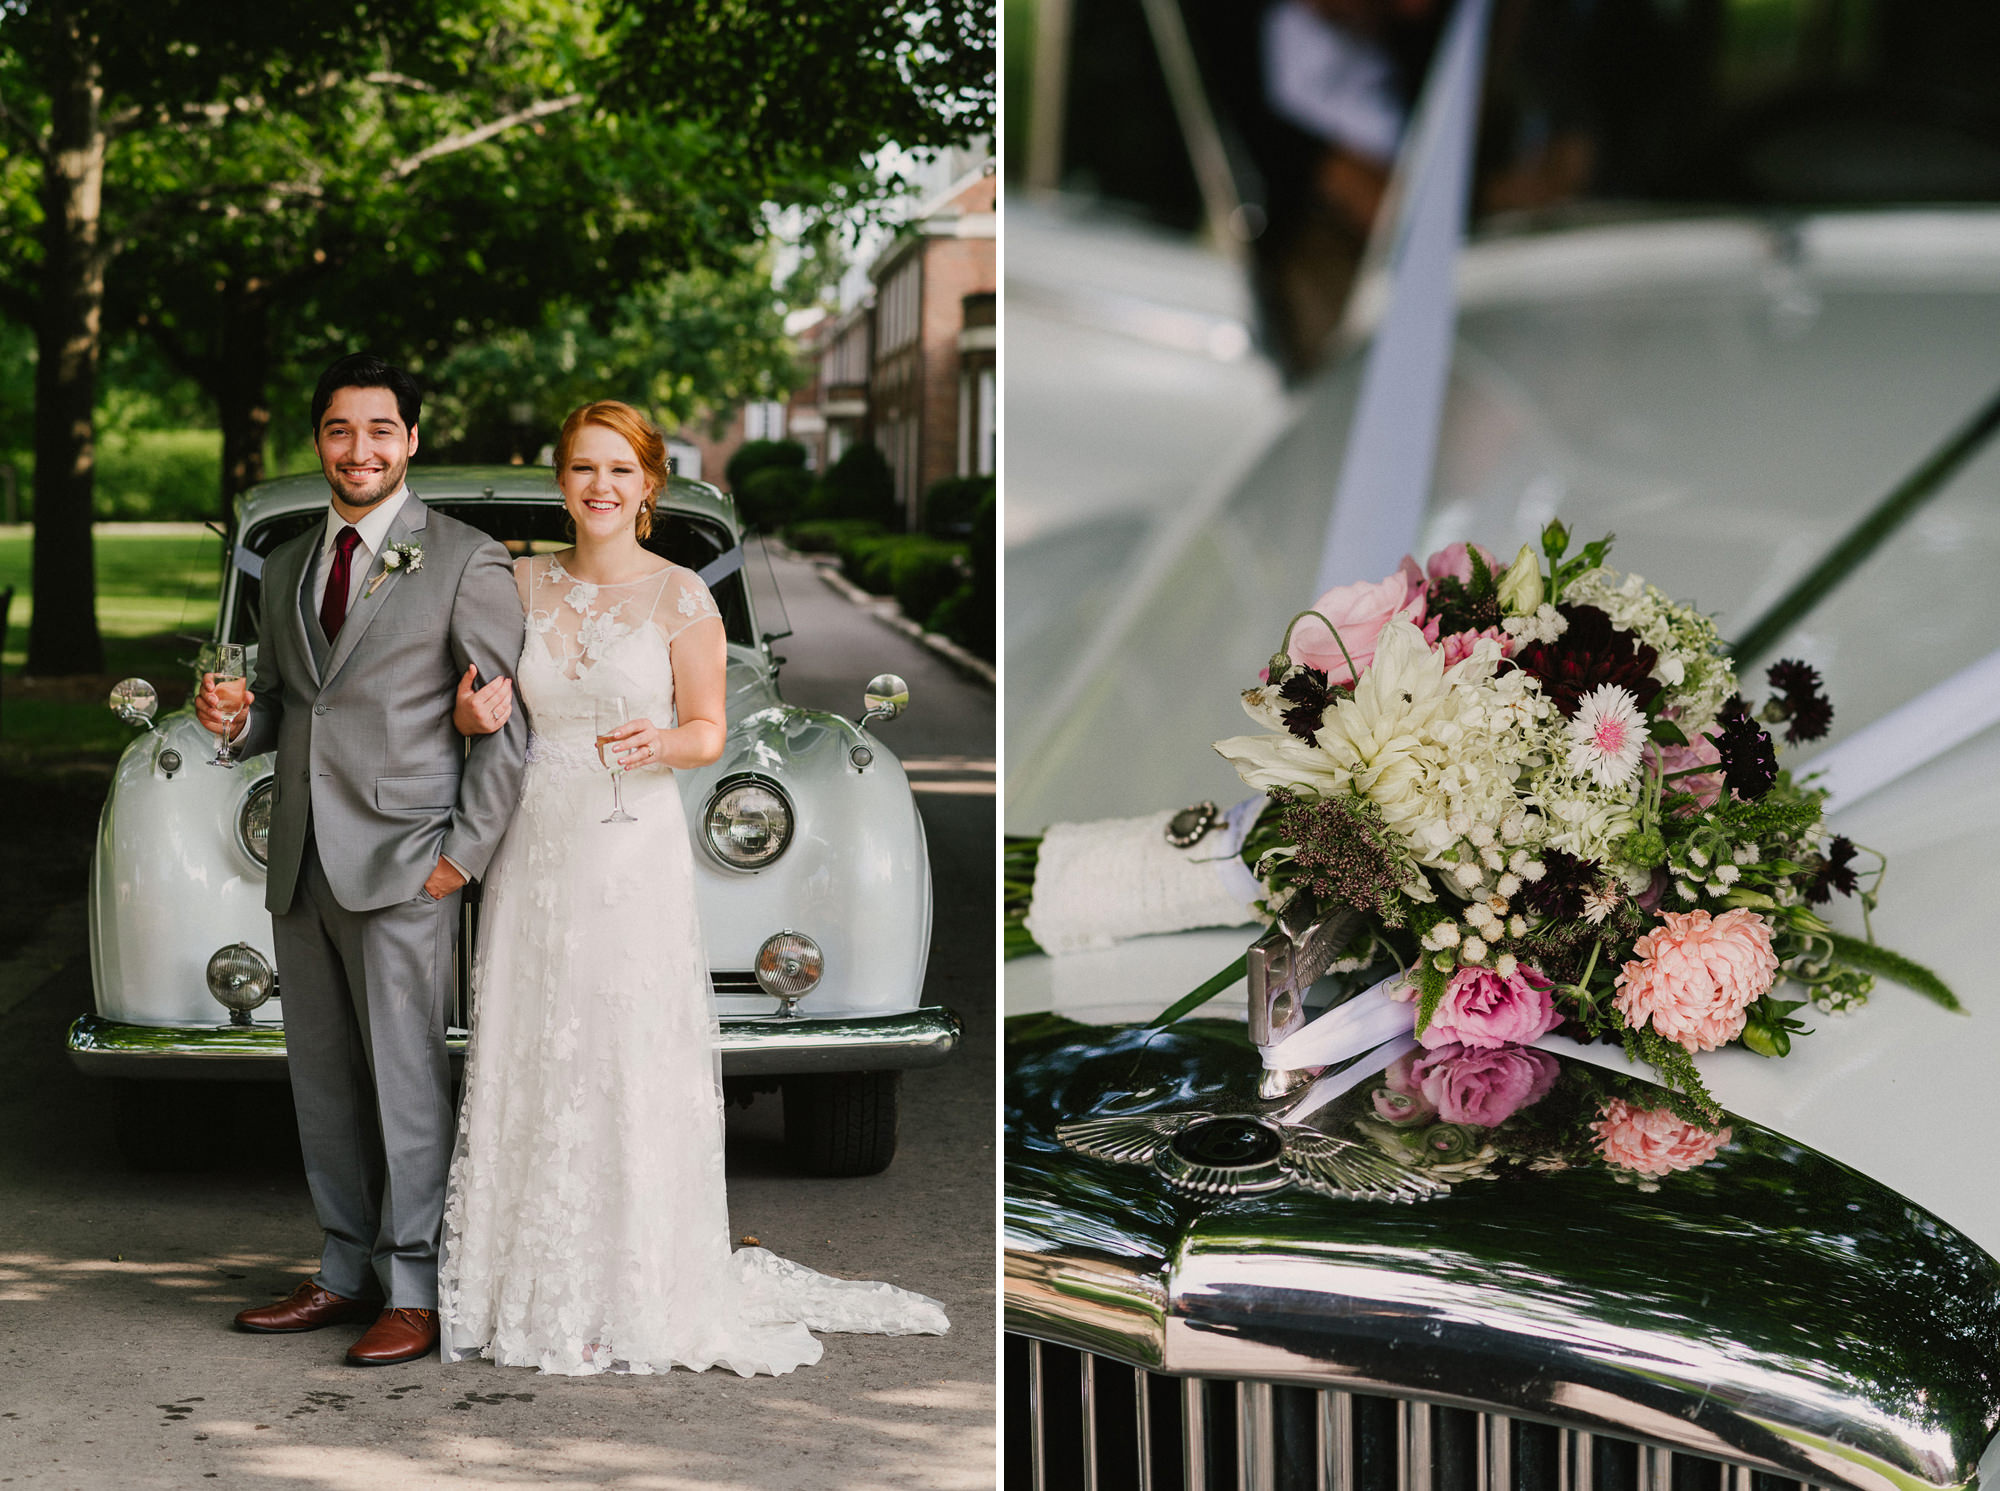 portraits of bride and groom from Wedding at Saint Andrew's College